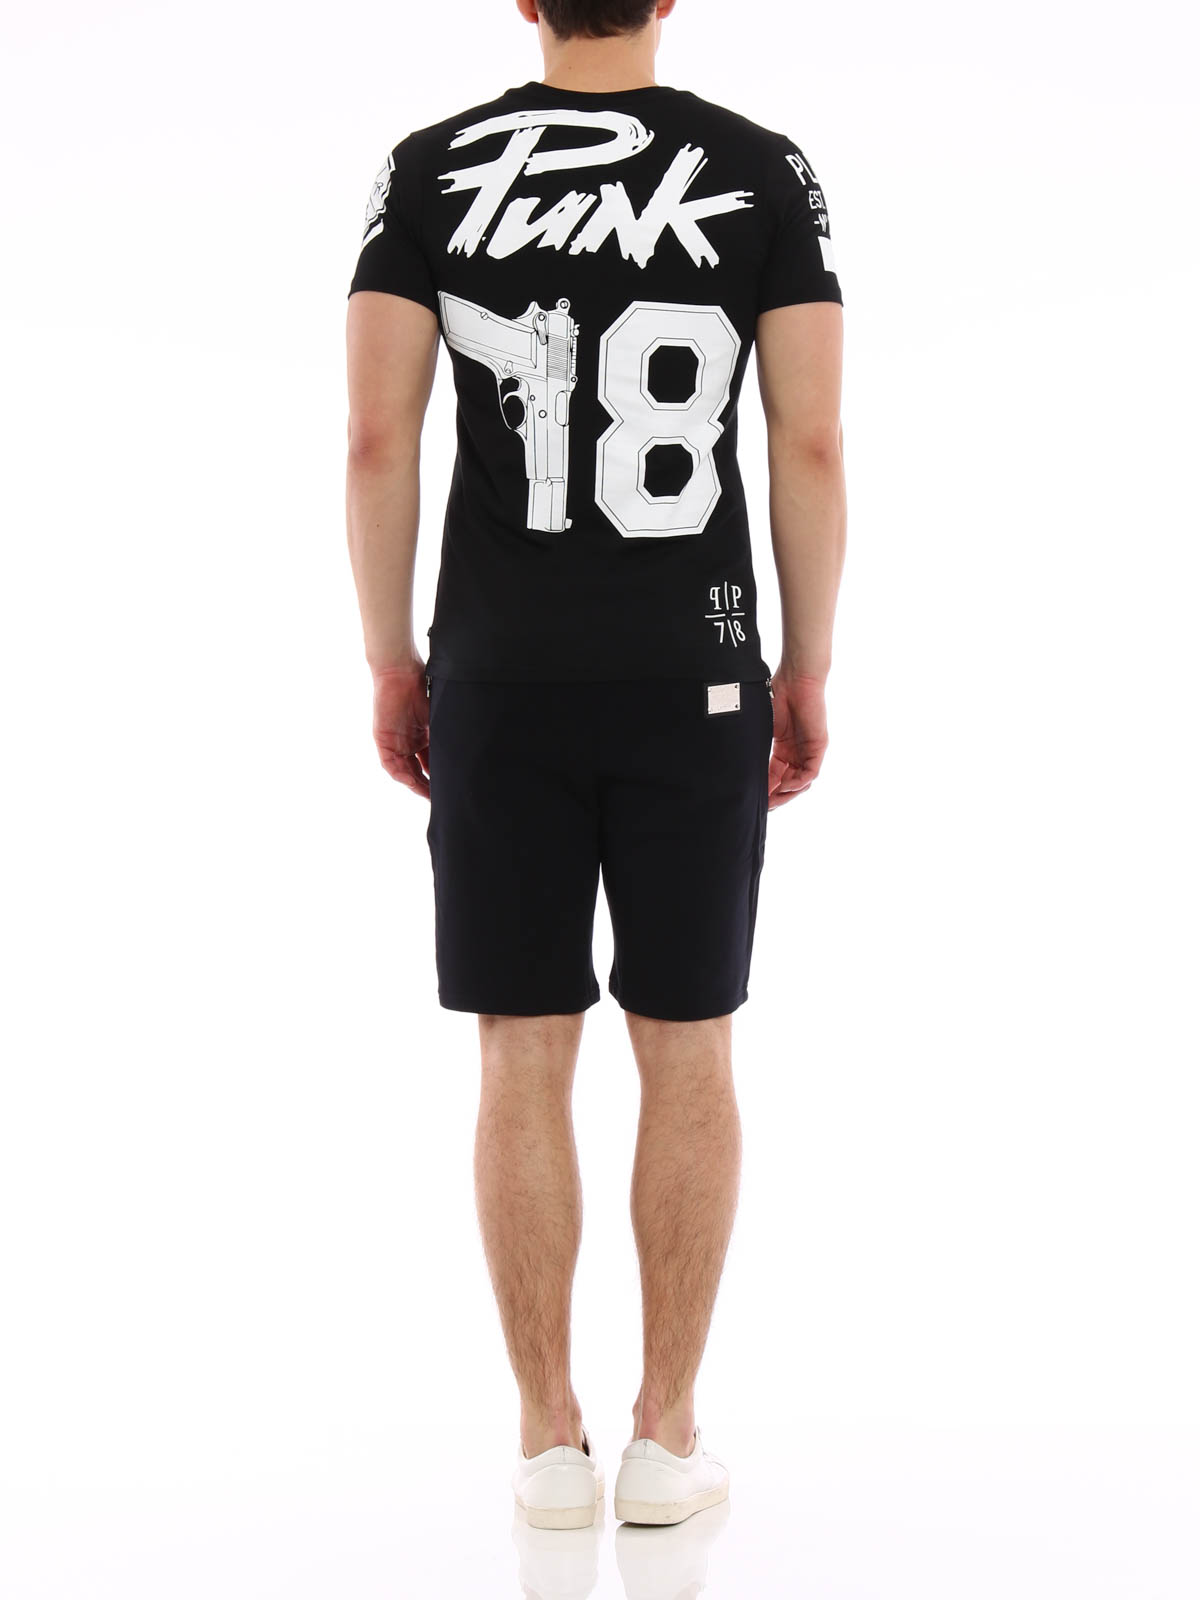 the best t shirt by philipp plein t shirts shop online